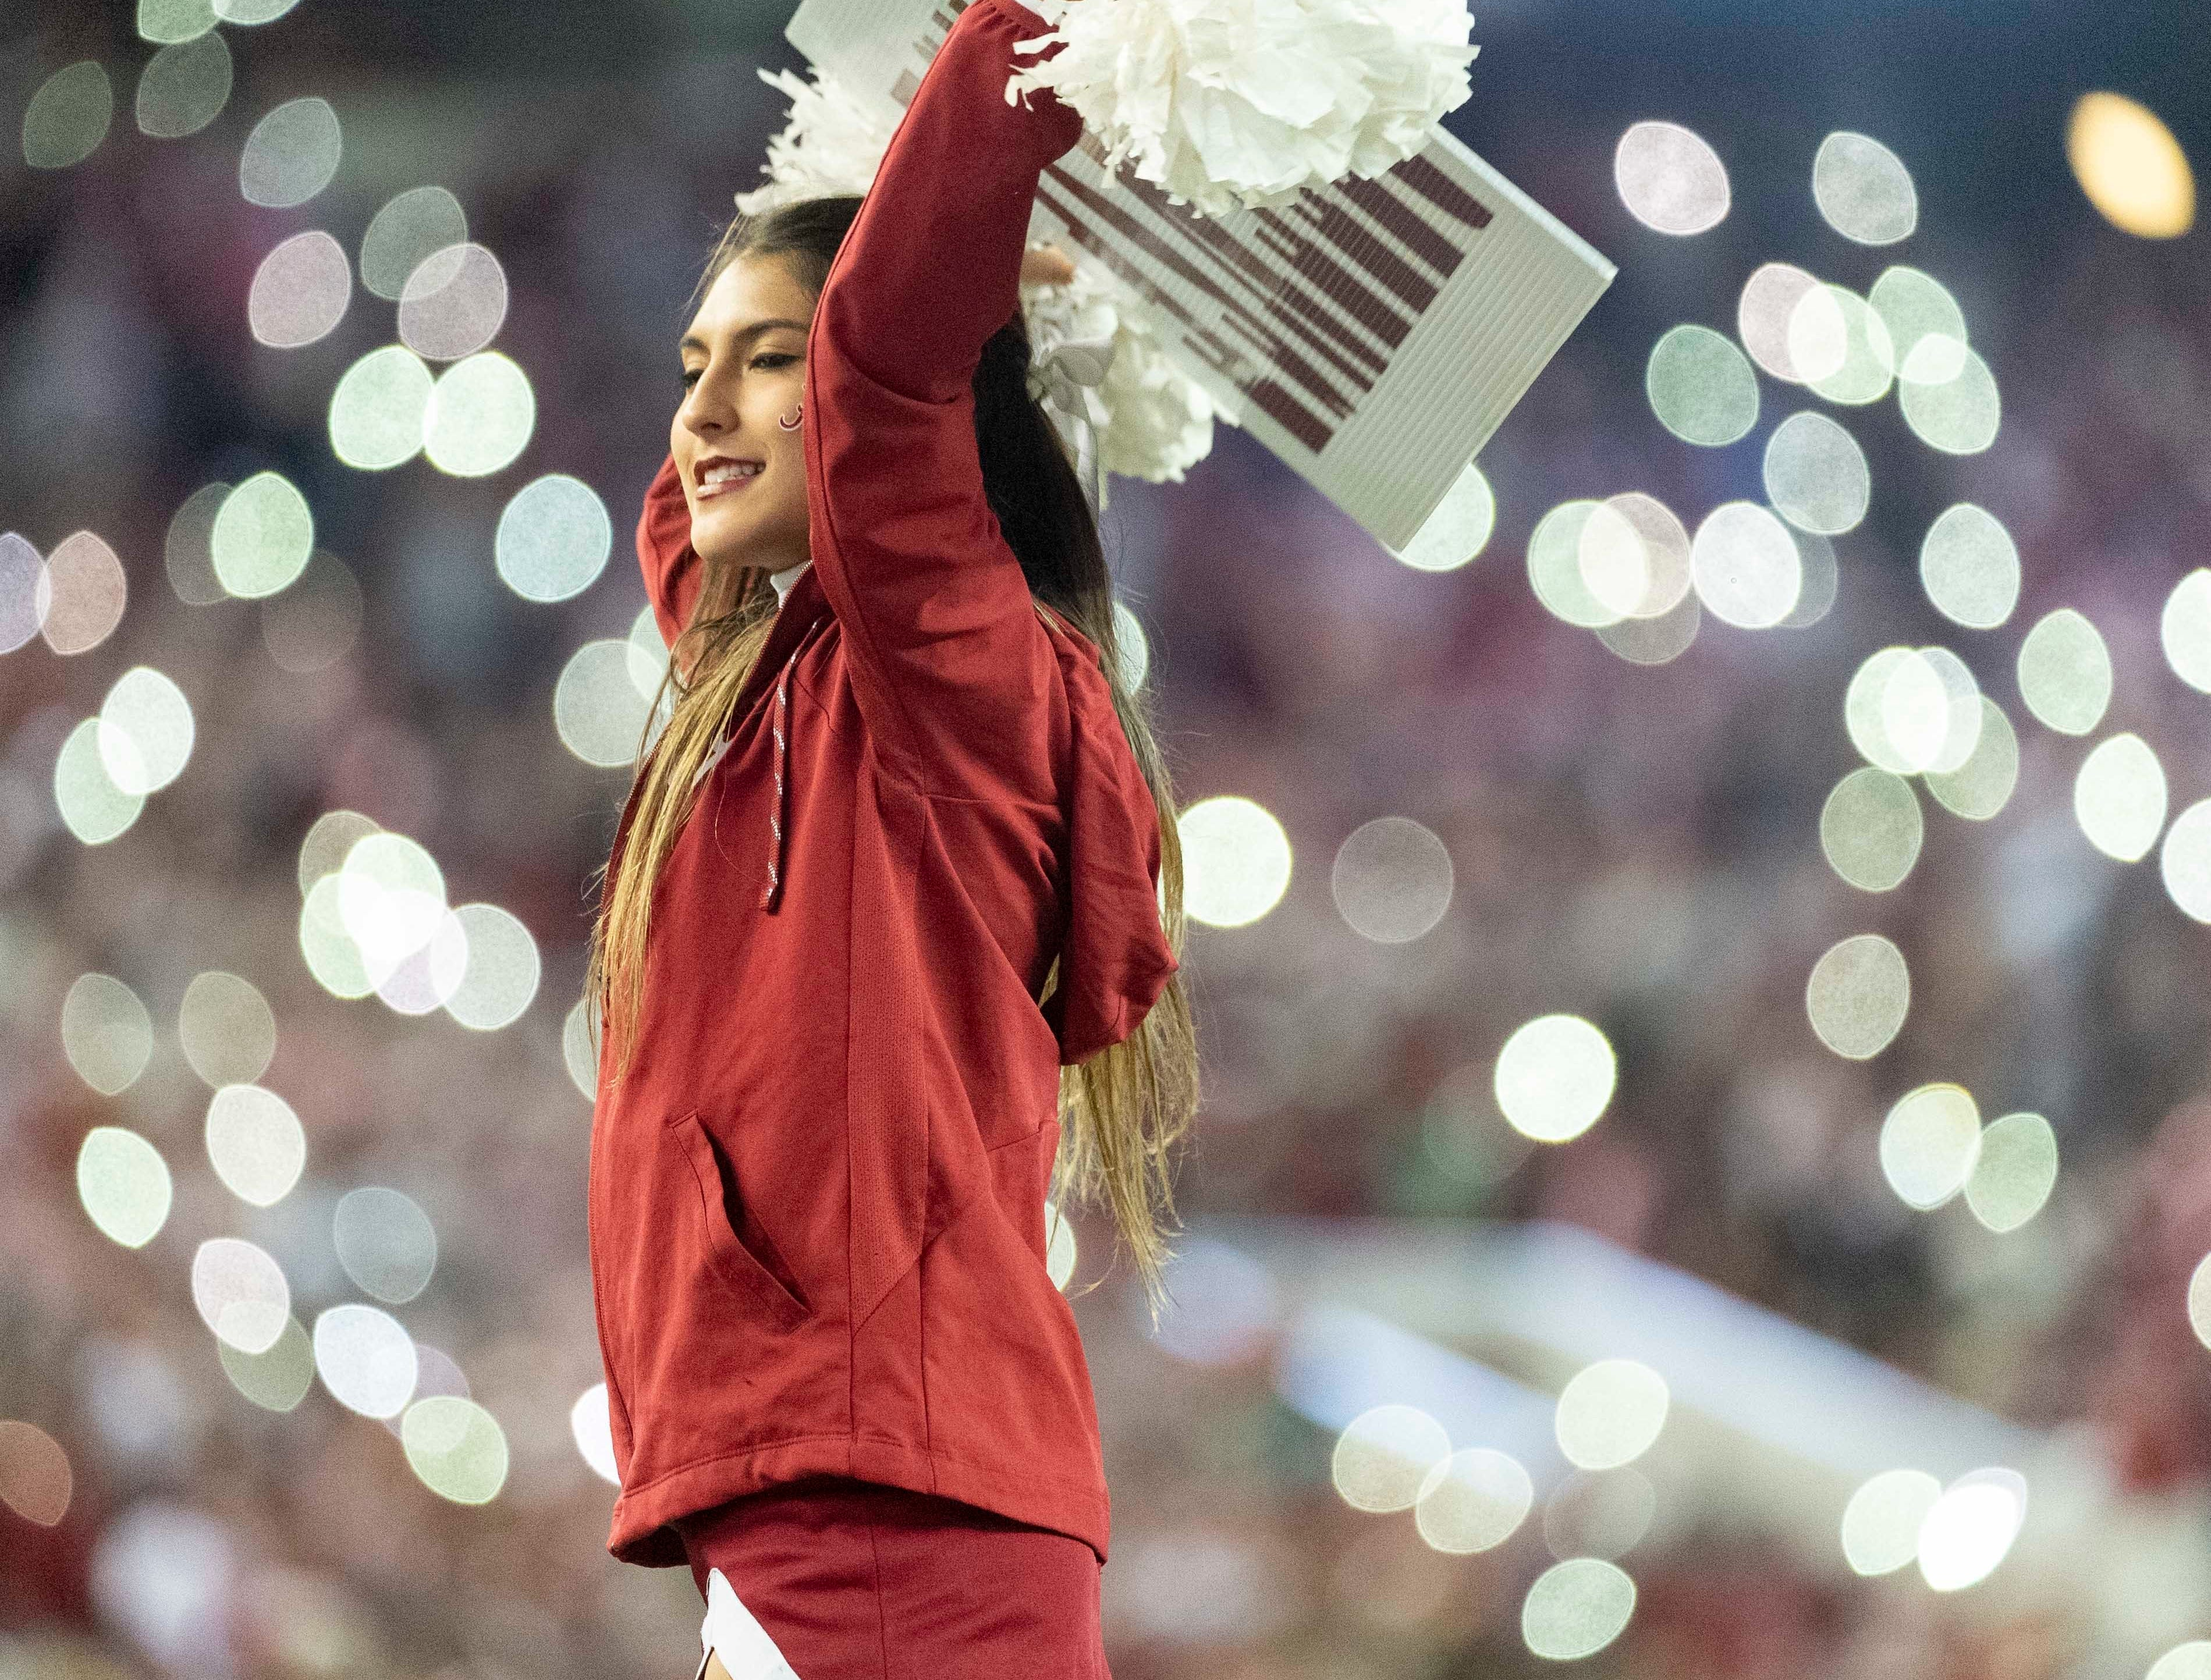 An Alabama cheerleader performs with cell-phone lights in the background during the second half of an NCAA college football game against Auburn, Saturday, Nov. 24, 2018, in Tuscaloosa, Ala. (AP Photo/Vasha Hunt)